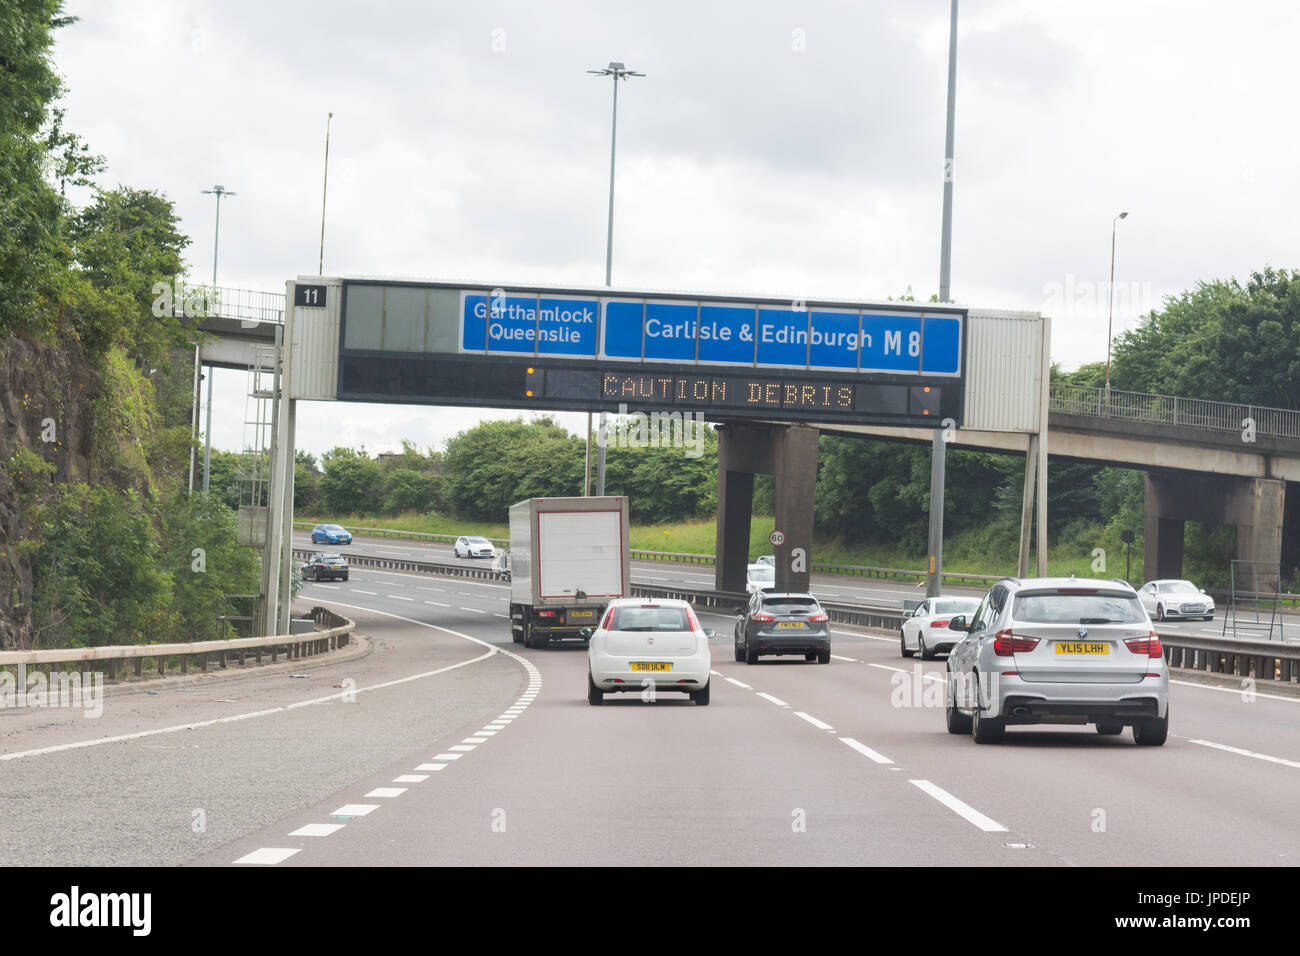 Overhead gantry sign on M8 motorway showing message 'caution debris' - Stock Image